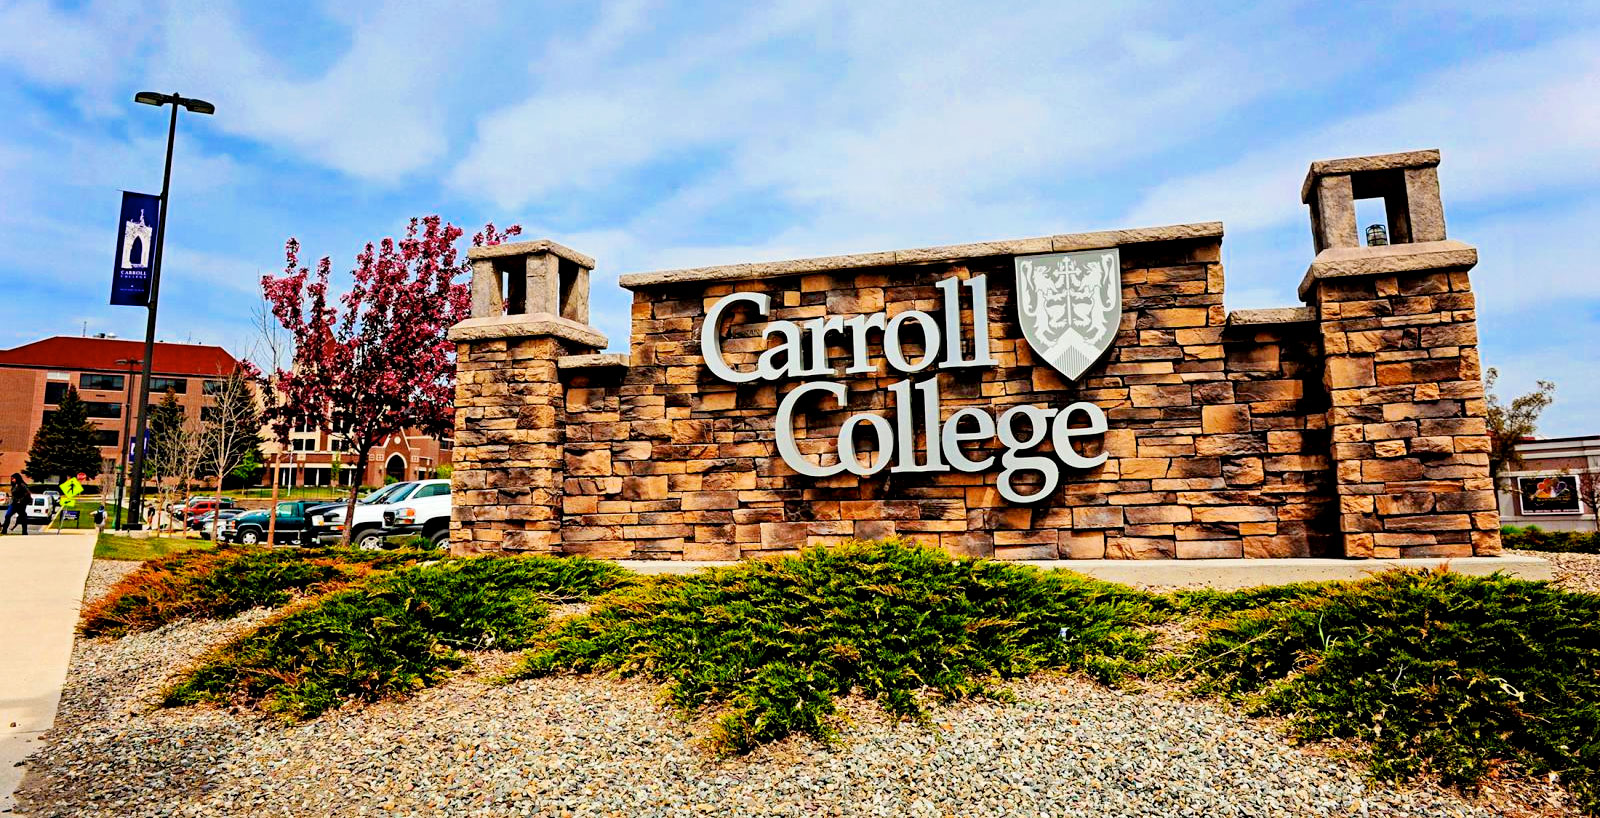 Carroll College sign